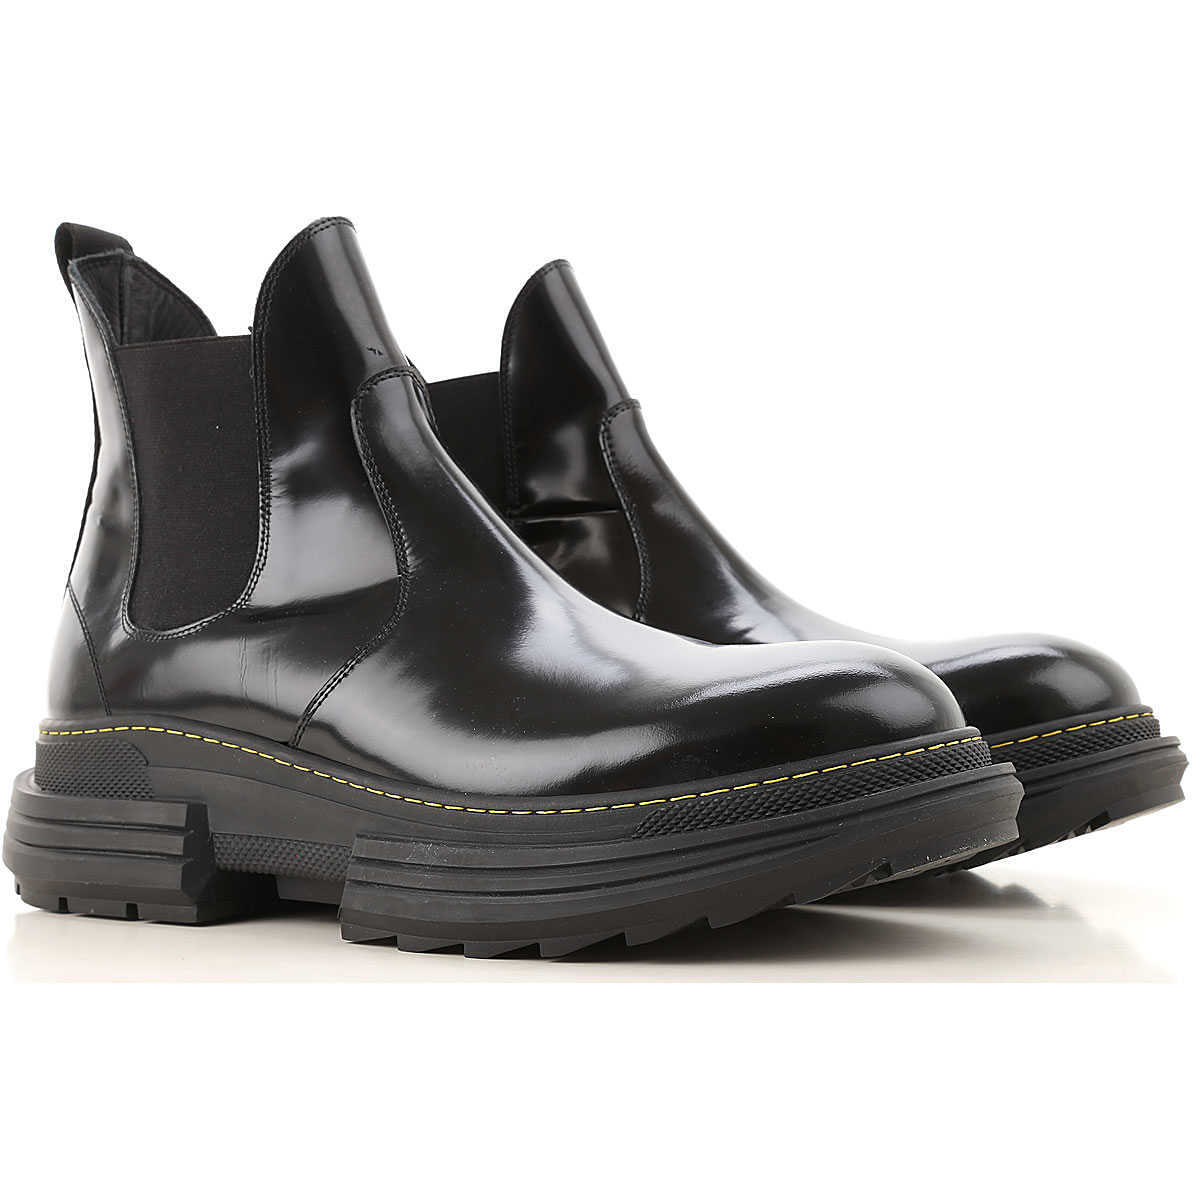 Beyond Chelsea Boots for Men Black Canada - GOOFASH - Mens BOOTS